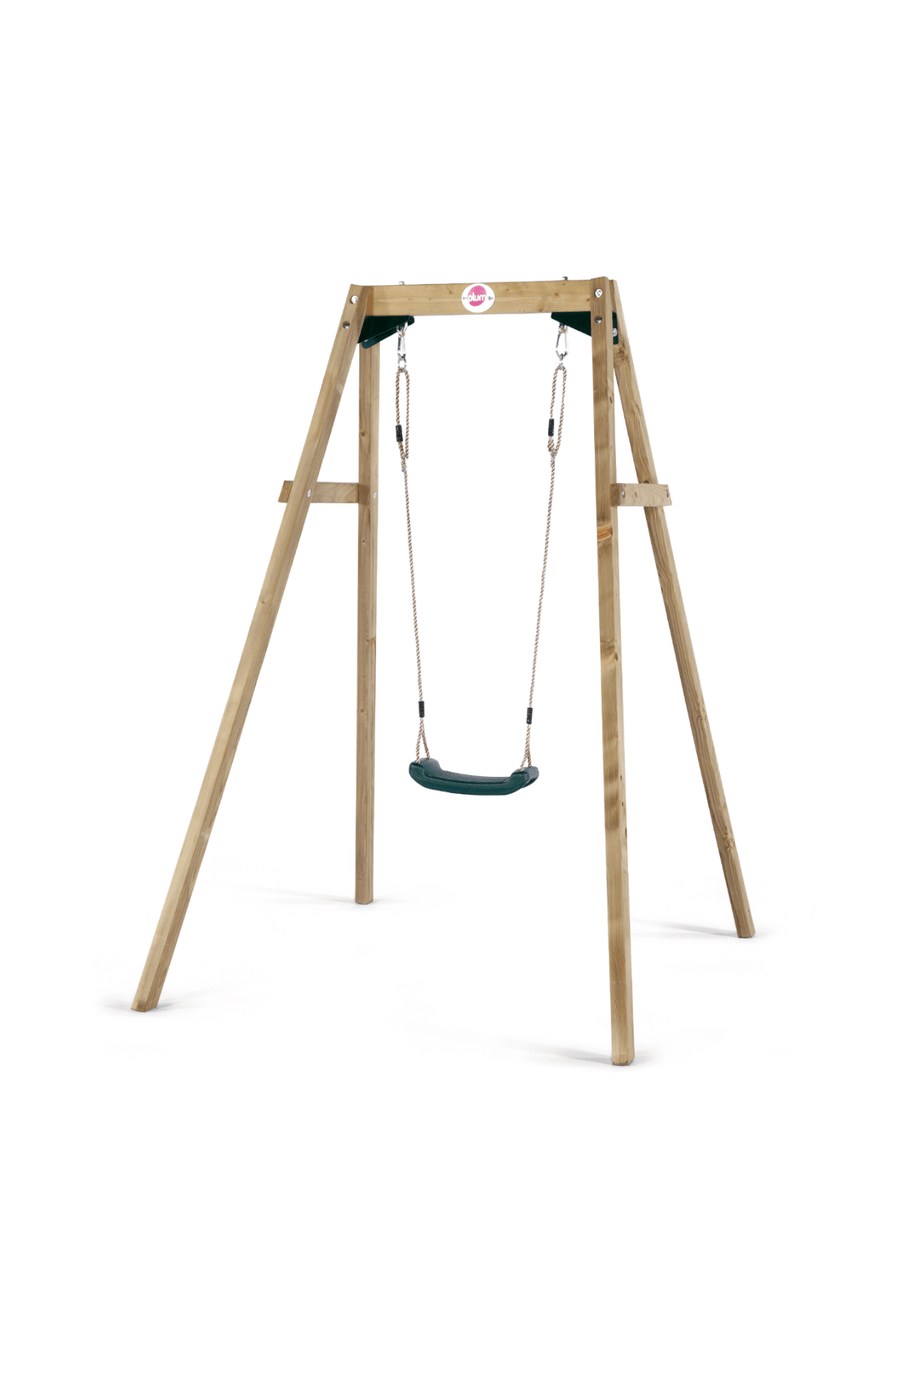 Plum® Wooden Swing Set